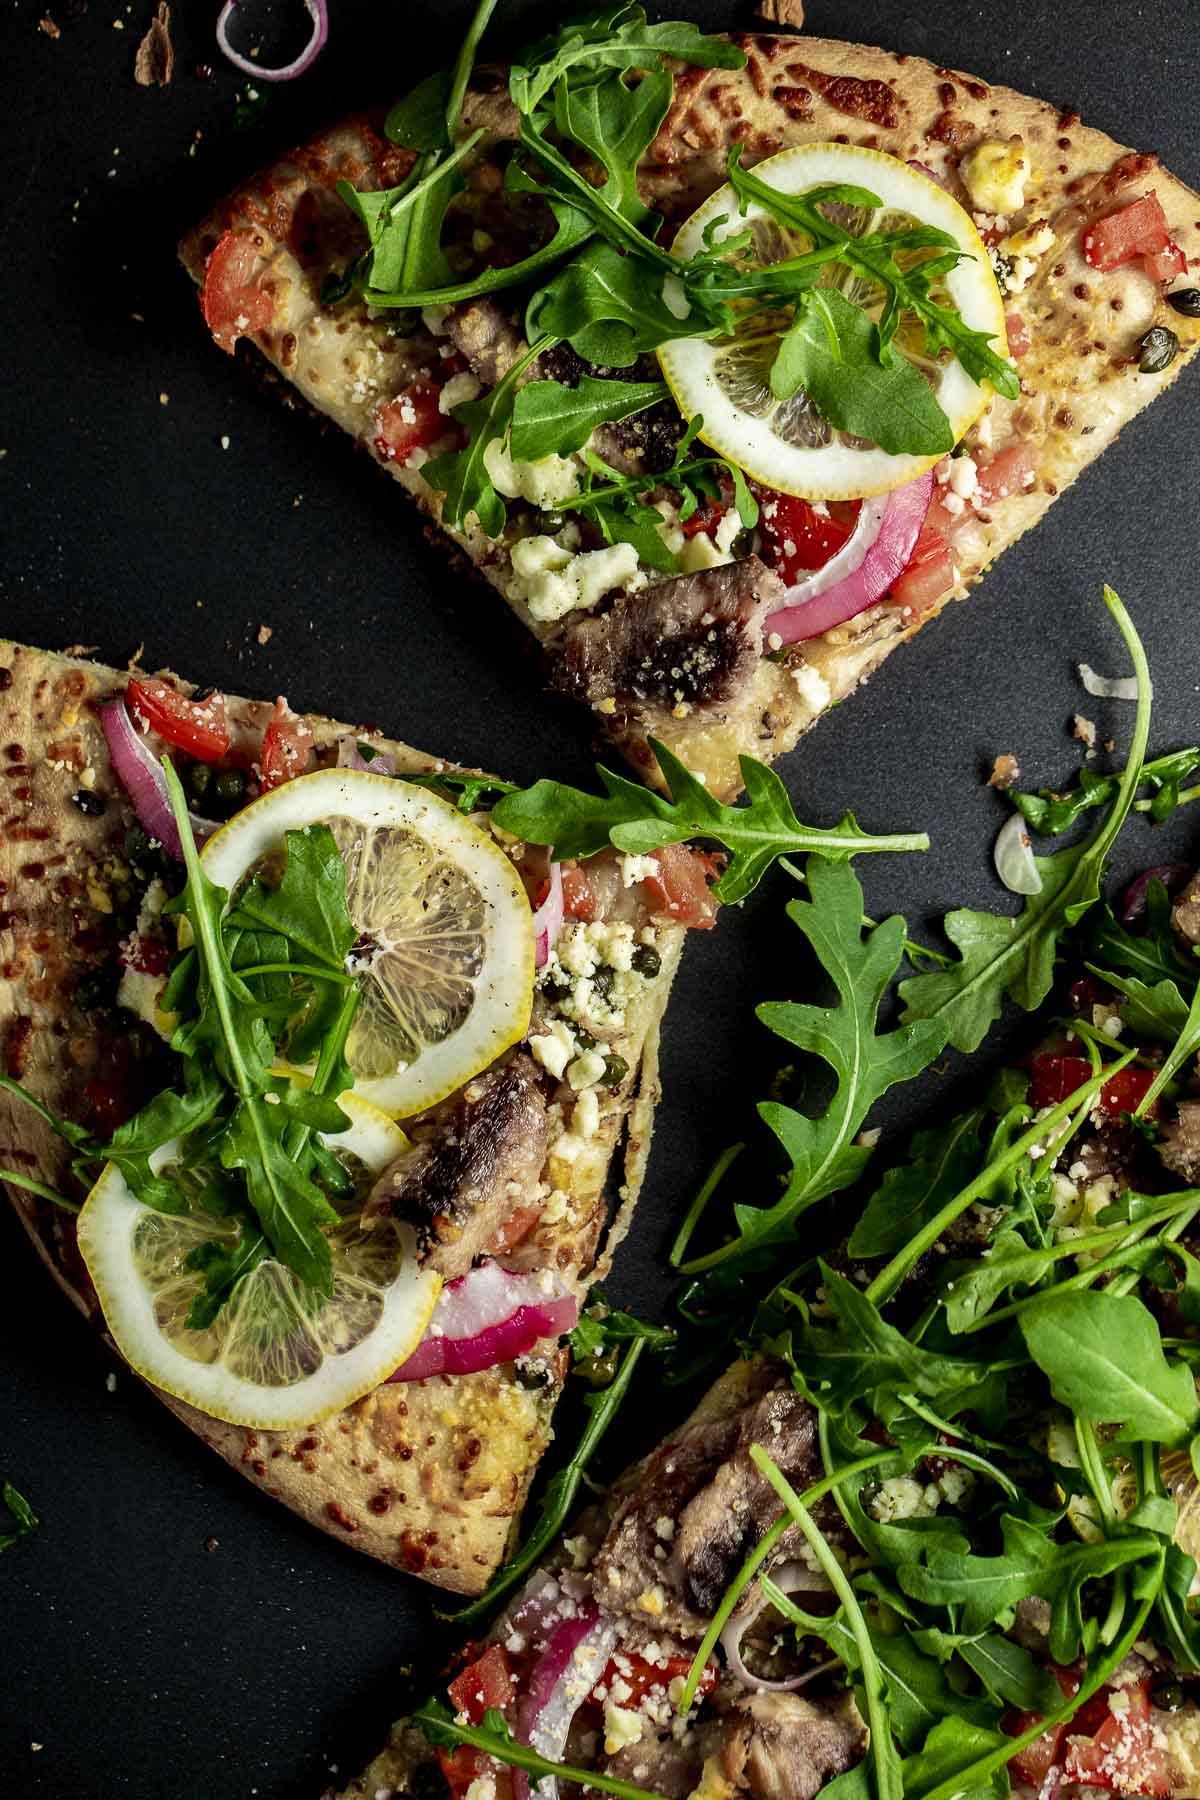 Overhead of slices of sardine pizza topped with lemon slices and arugula.